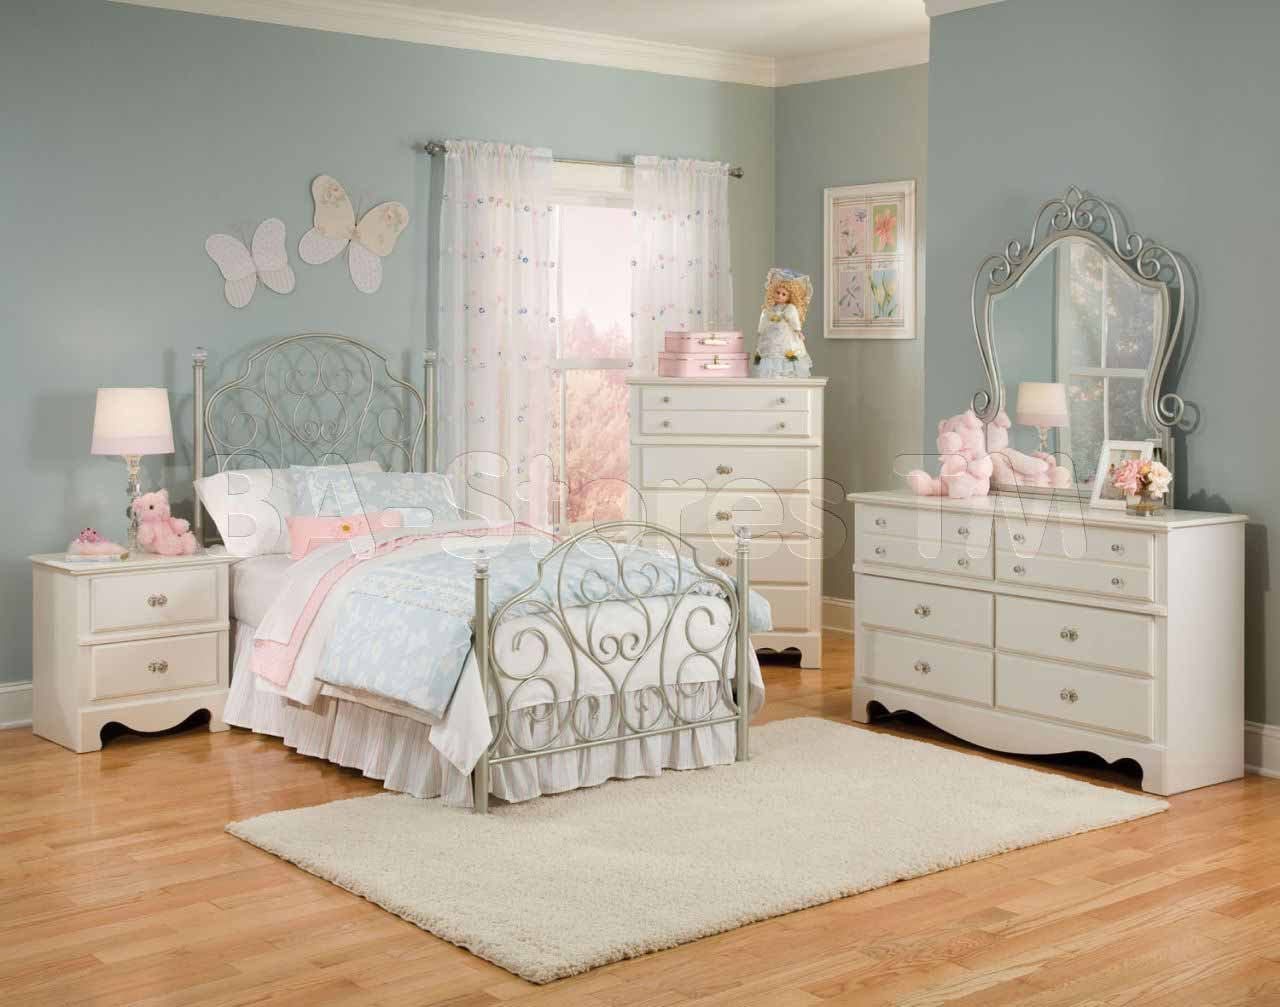 kids bedroom wallpapers hd wallpapers pics. Black Bedroom Furniture Sets. Home Design Ideas